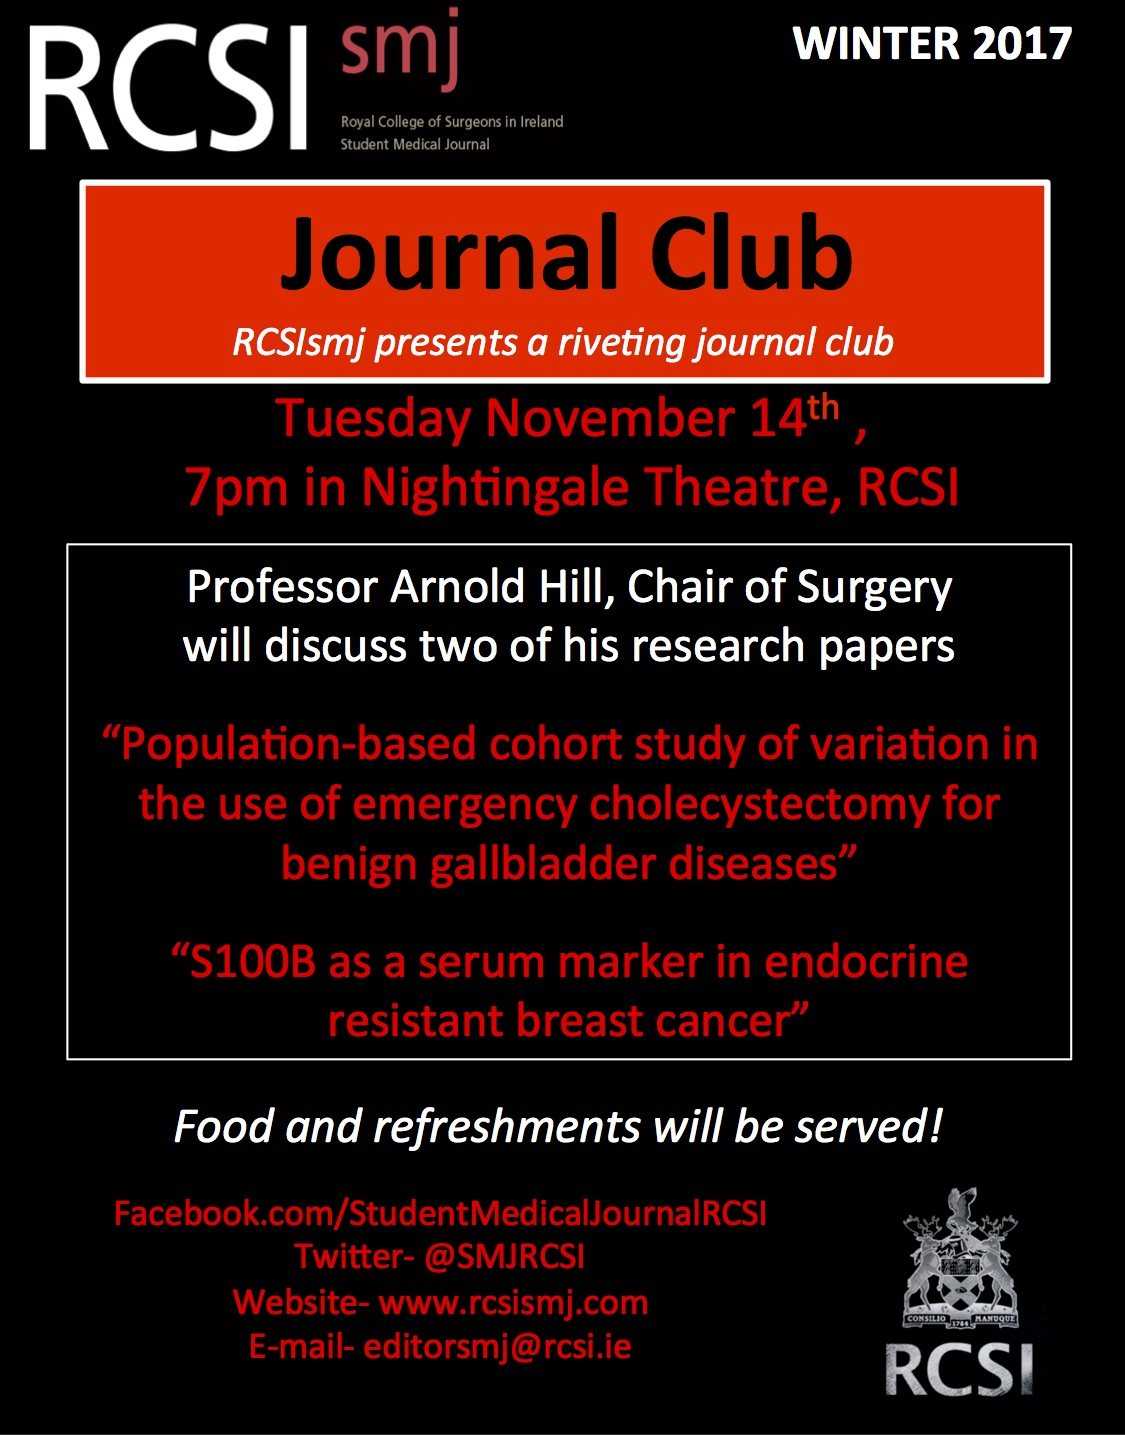 Rcsismj journal club tuesday november 14th rcsi student medical as always pizza and refreshments will be served afterwards maxwellsz